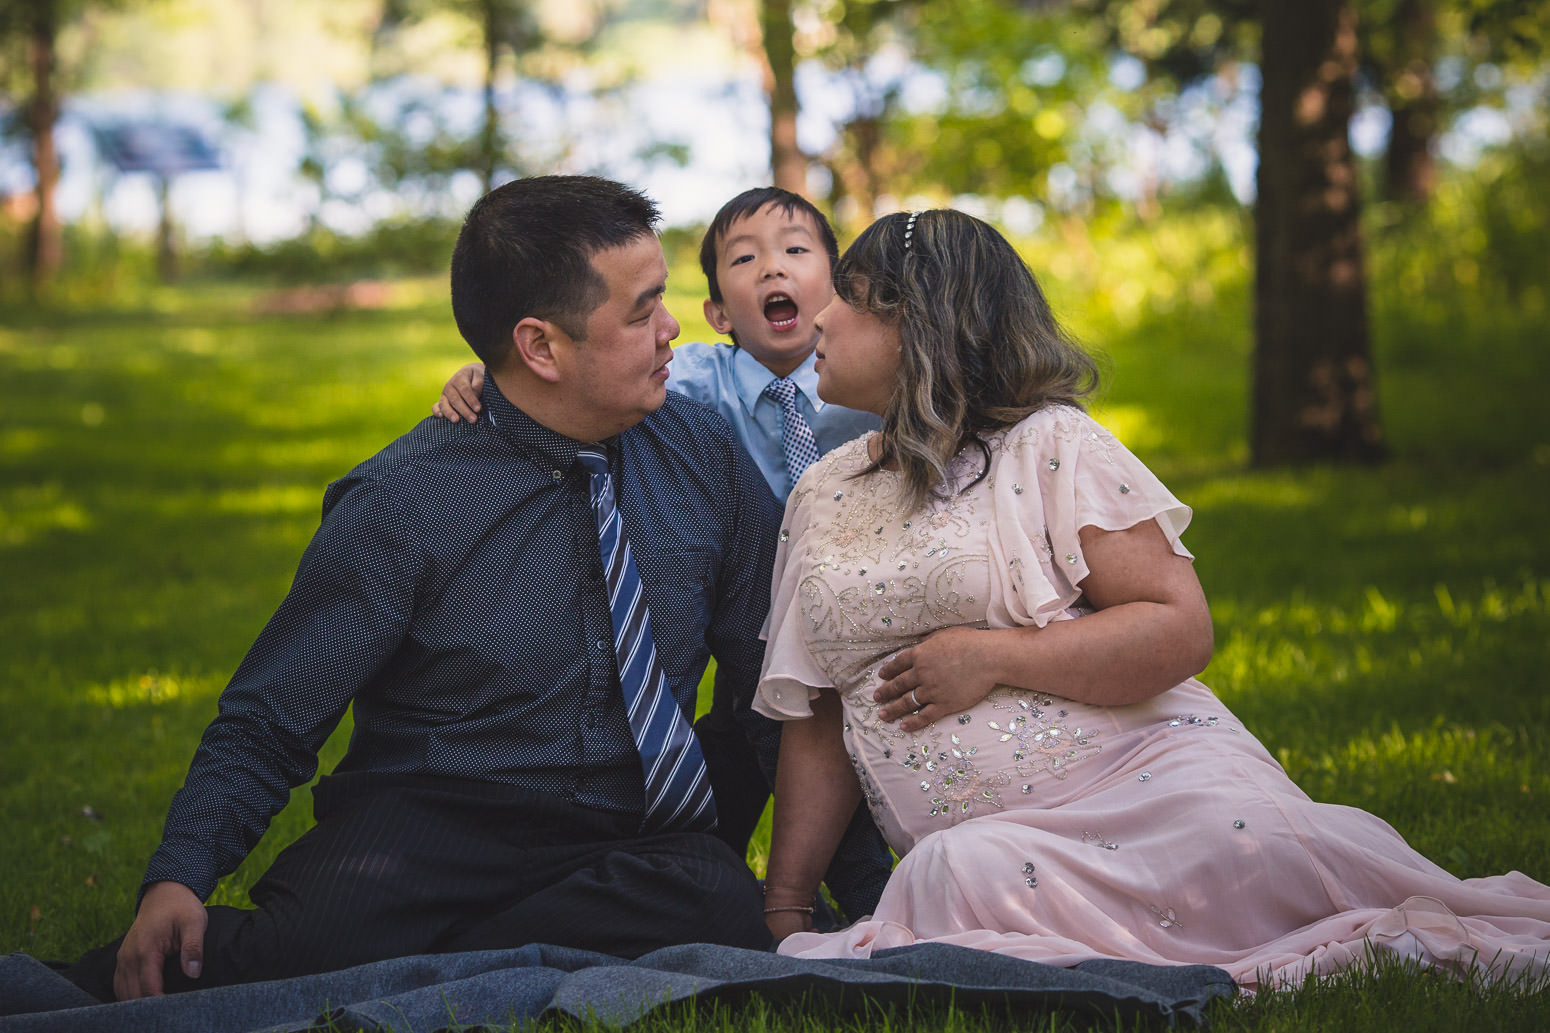 Family together during maternity photo session son makes funny face